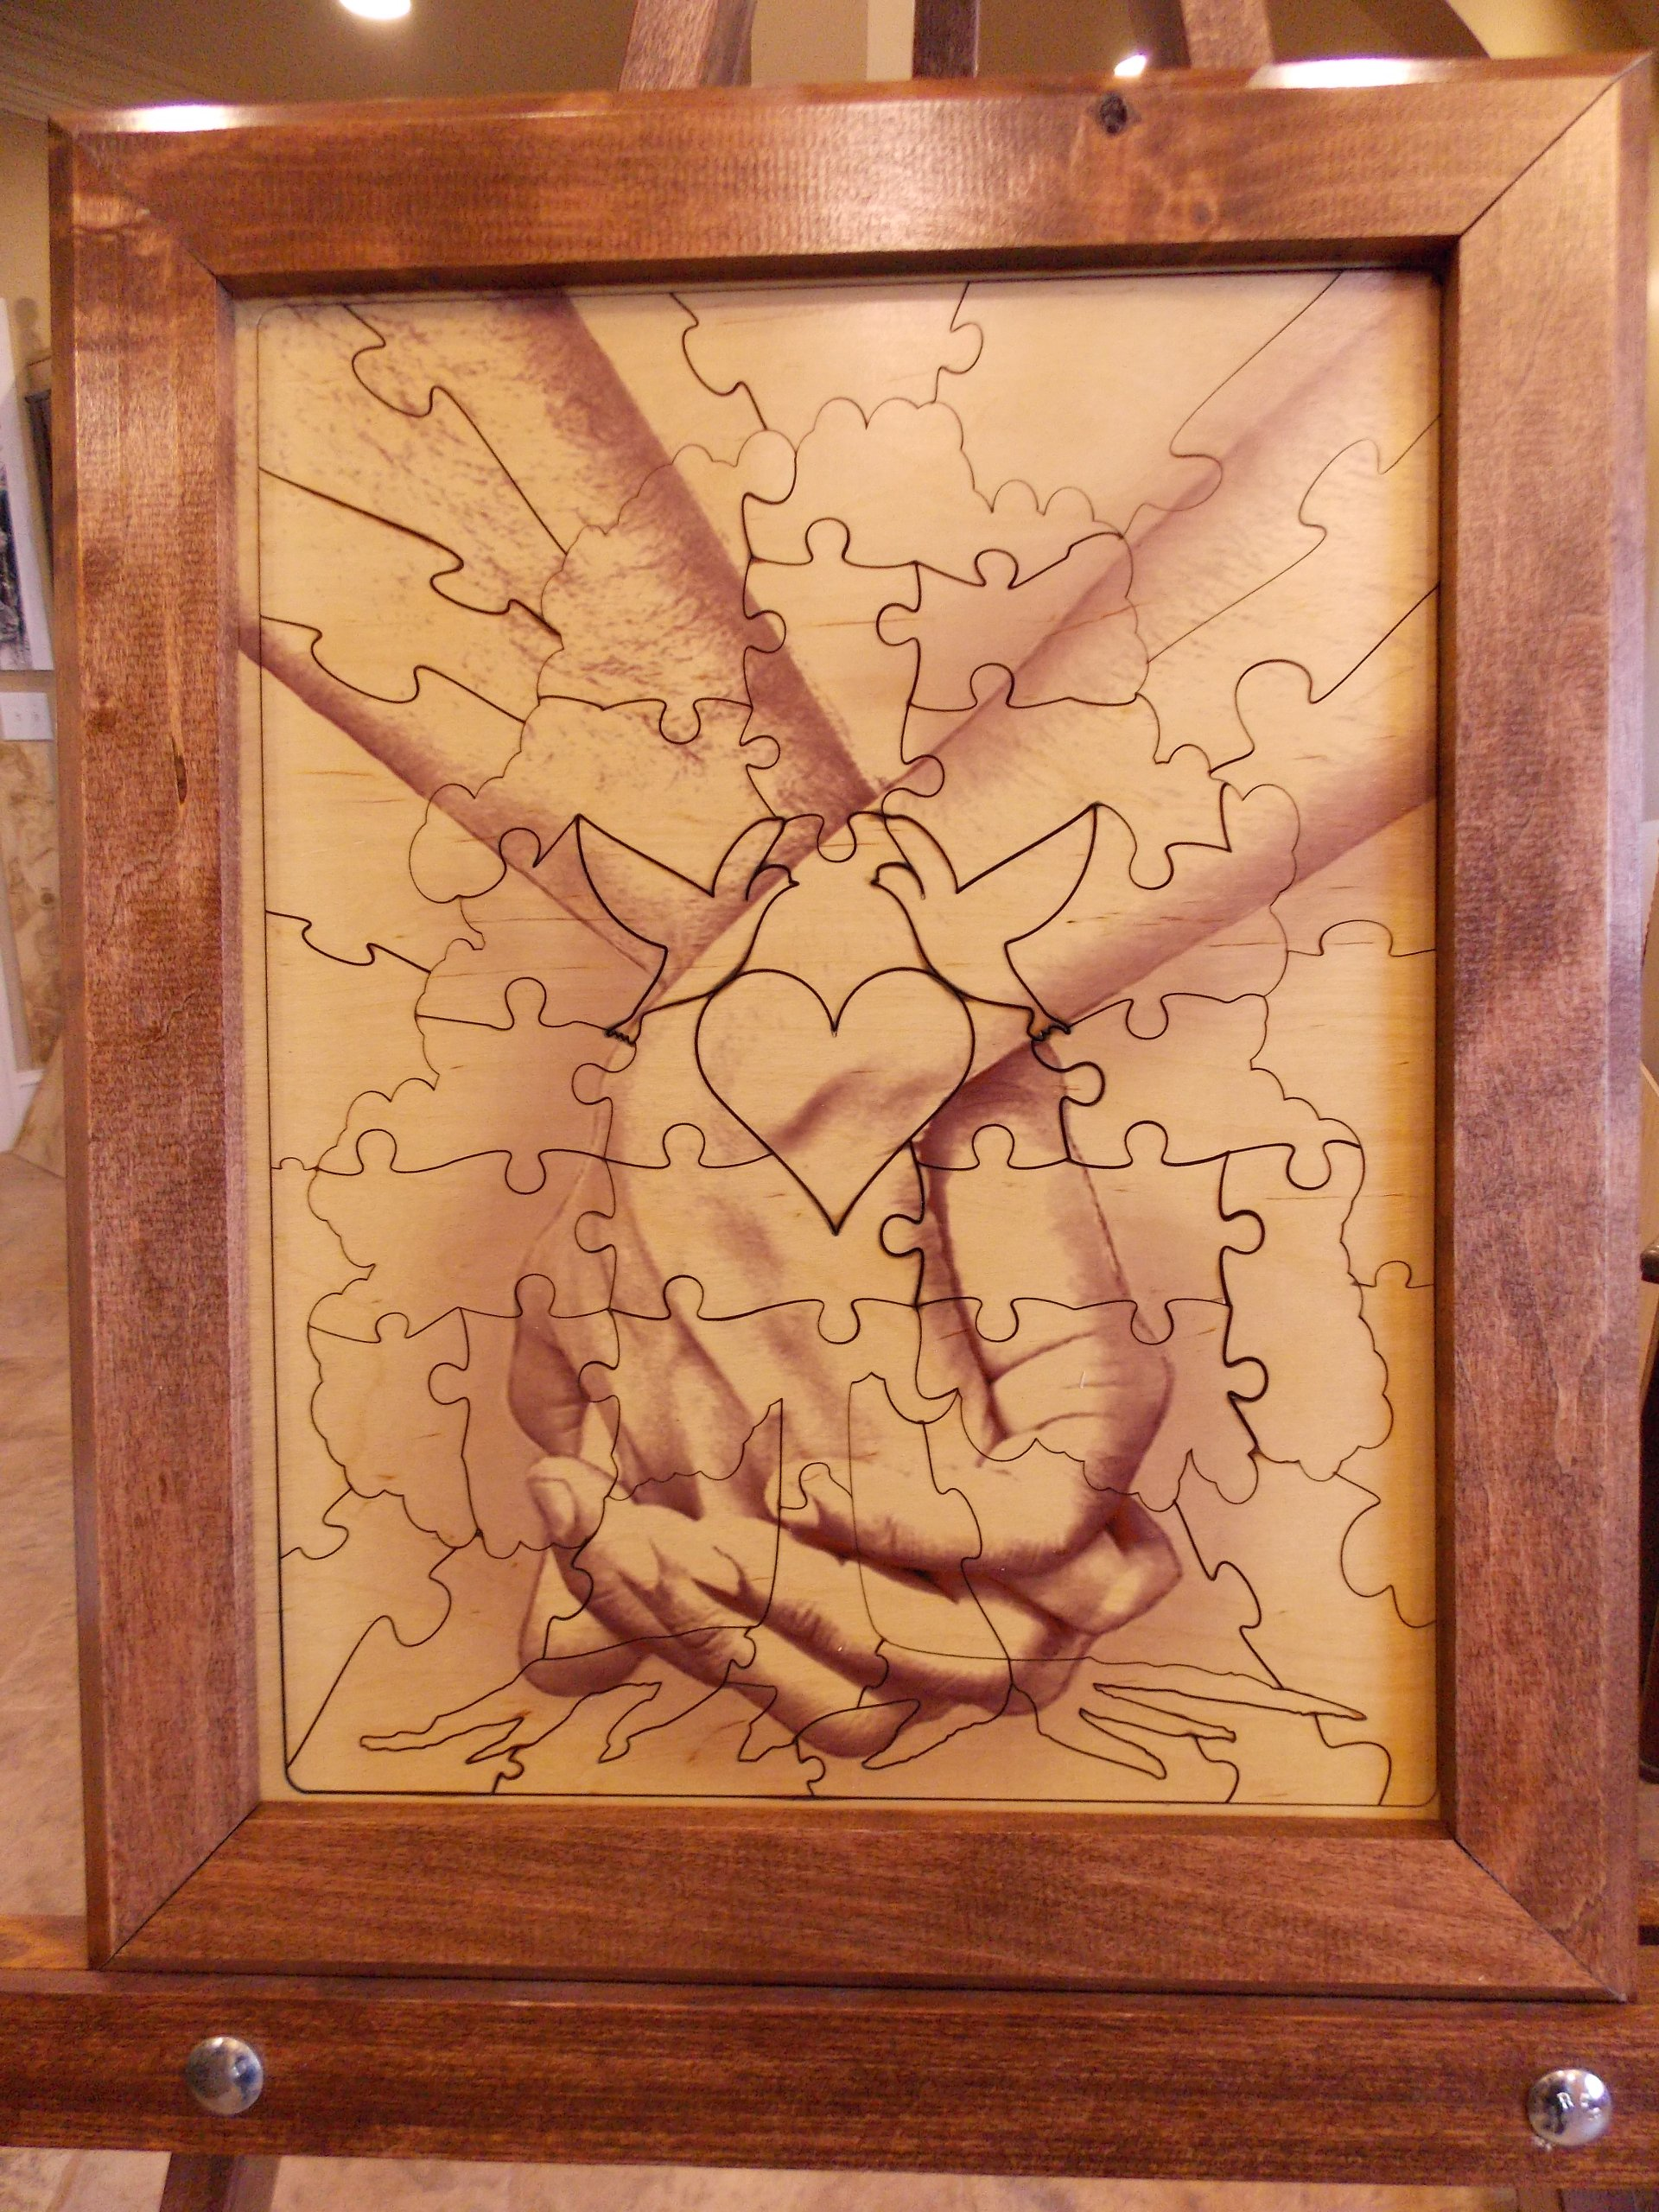 Wedding Guest Book Alternative Wood Puzzle ''Together Forever Tree Hand In Hand'' 14x17 Small 50 Piece by Together Forever Puzzle